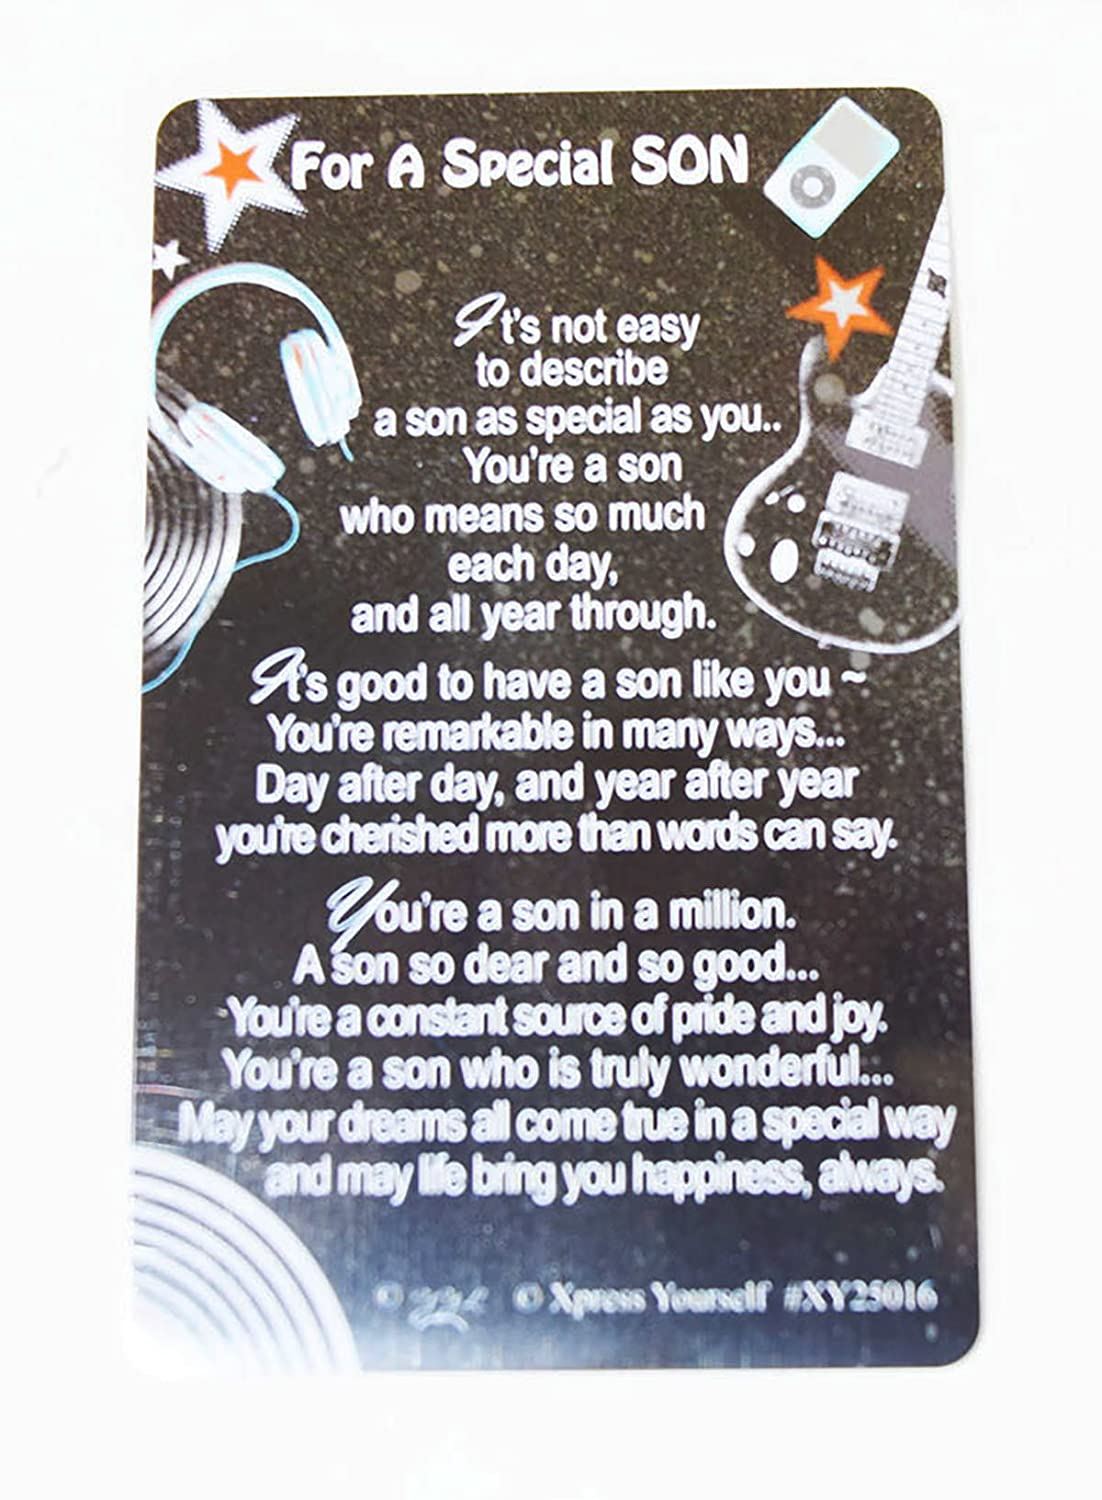 Special Son Keepsake Wallet Card Sentimental Message Him Birthday Family Gift Amazoncouk Office Products